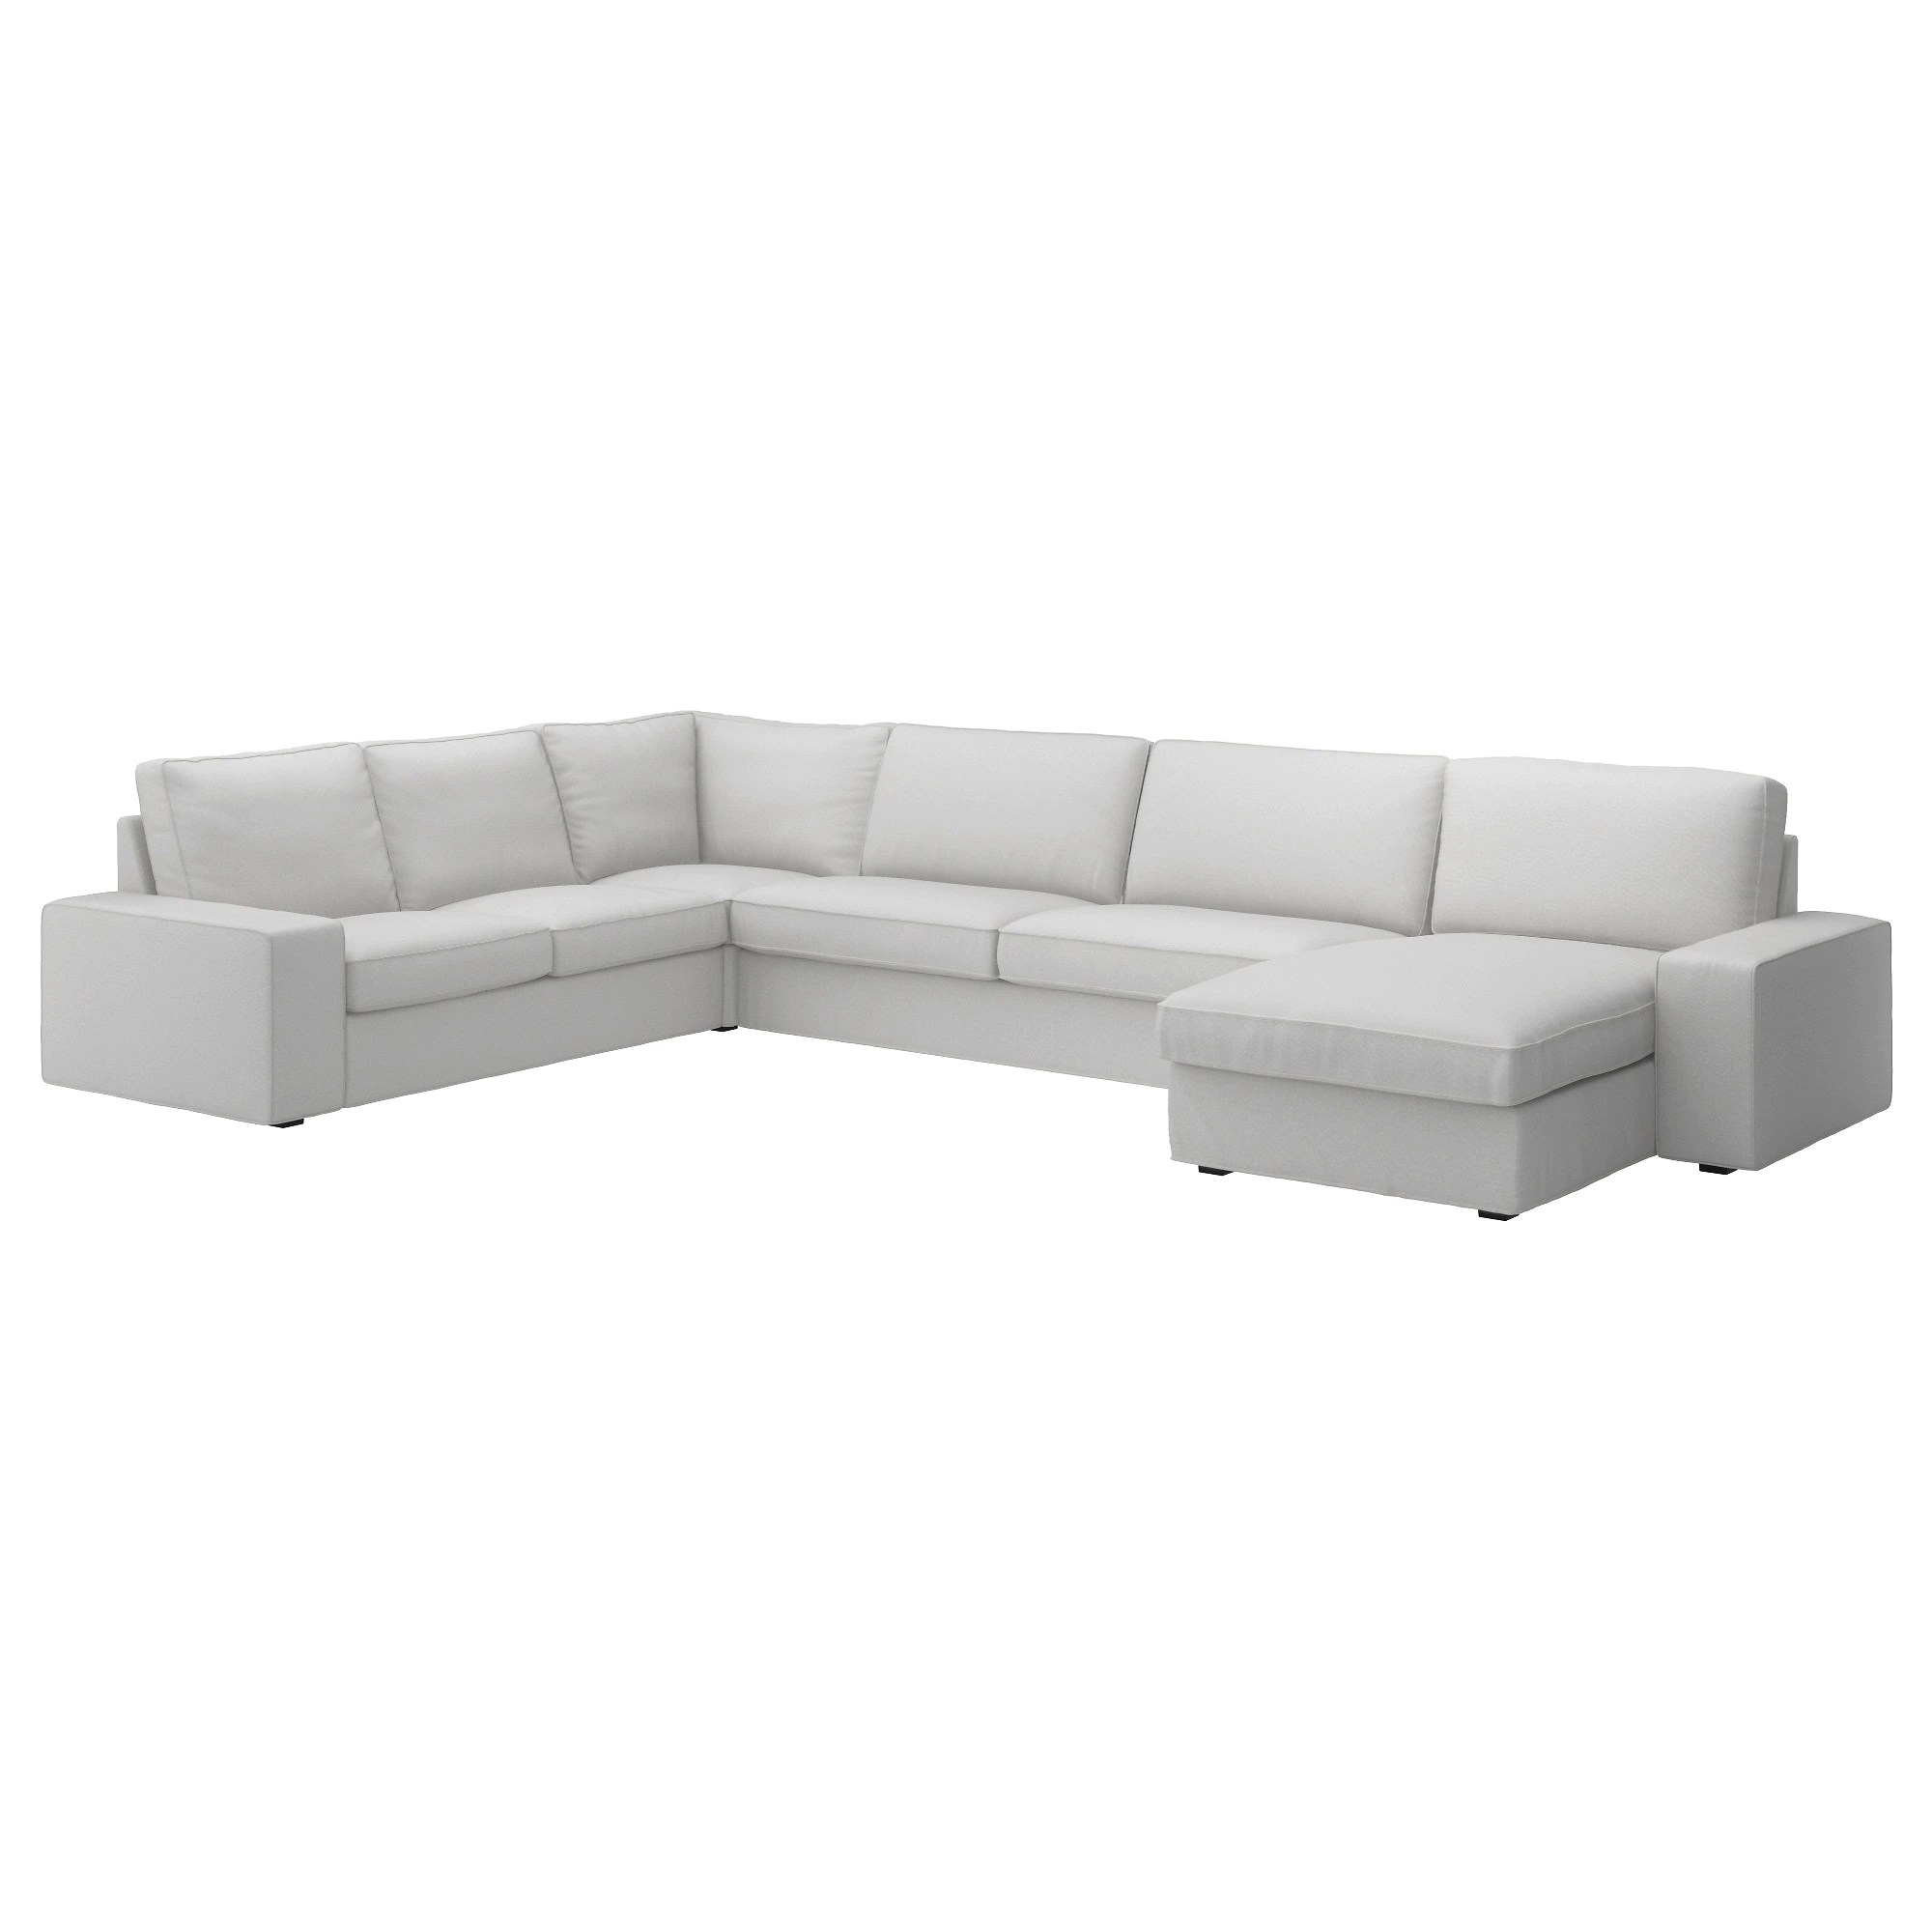 Canapé D'angle Ikea Kivik Kivik Sectional 5 Seat With Chaise Orrsta Orrsta Light Gray